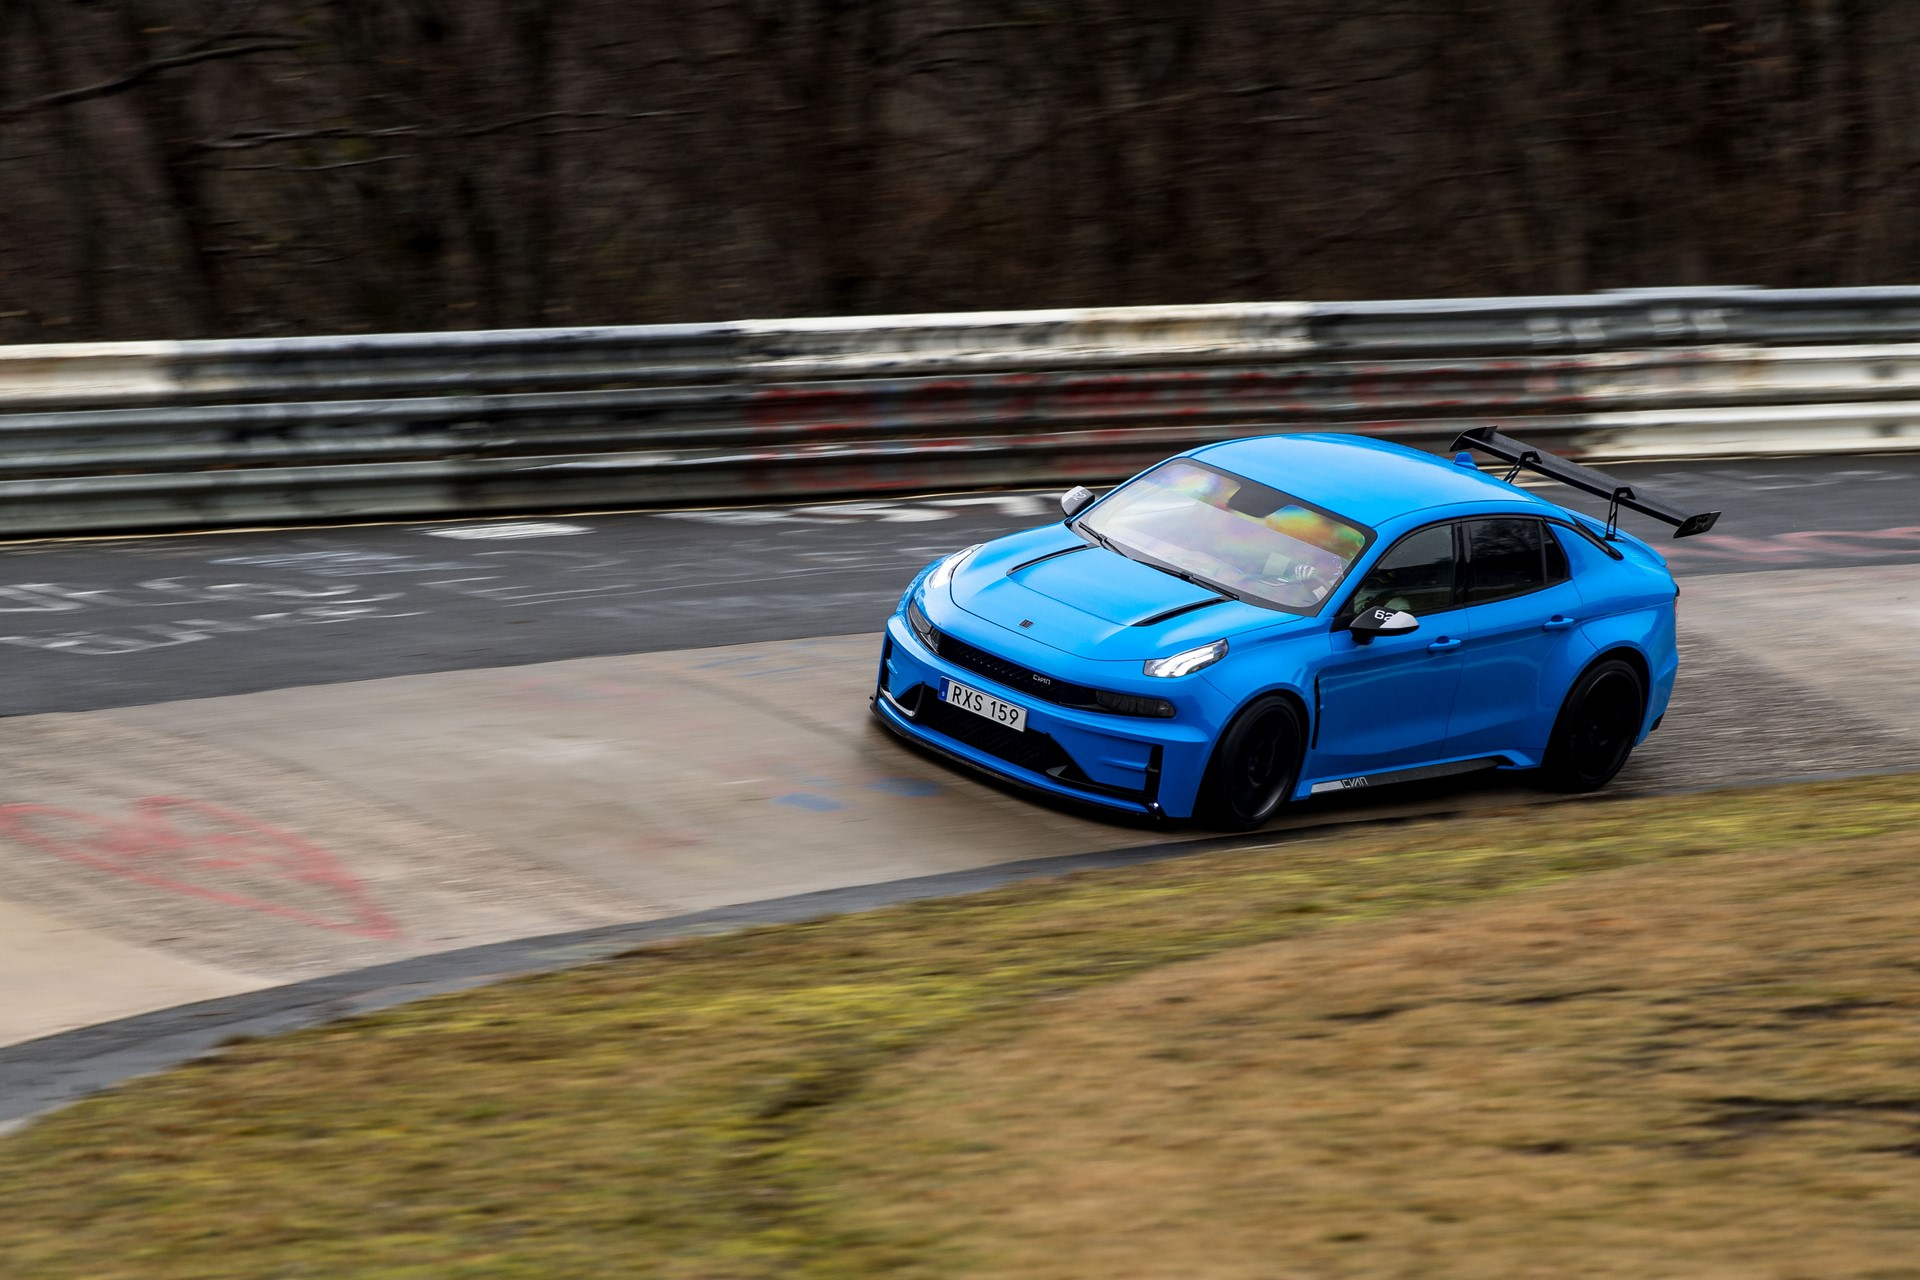 Lynk-Co-03-Cyan-Concept-Nurburgring-record-9